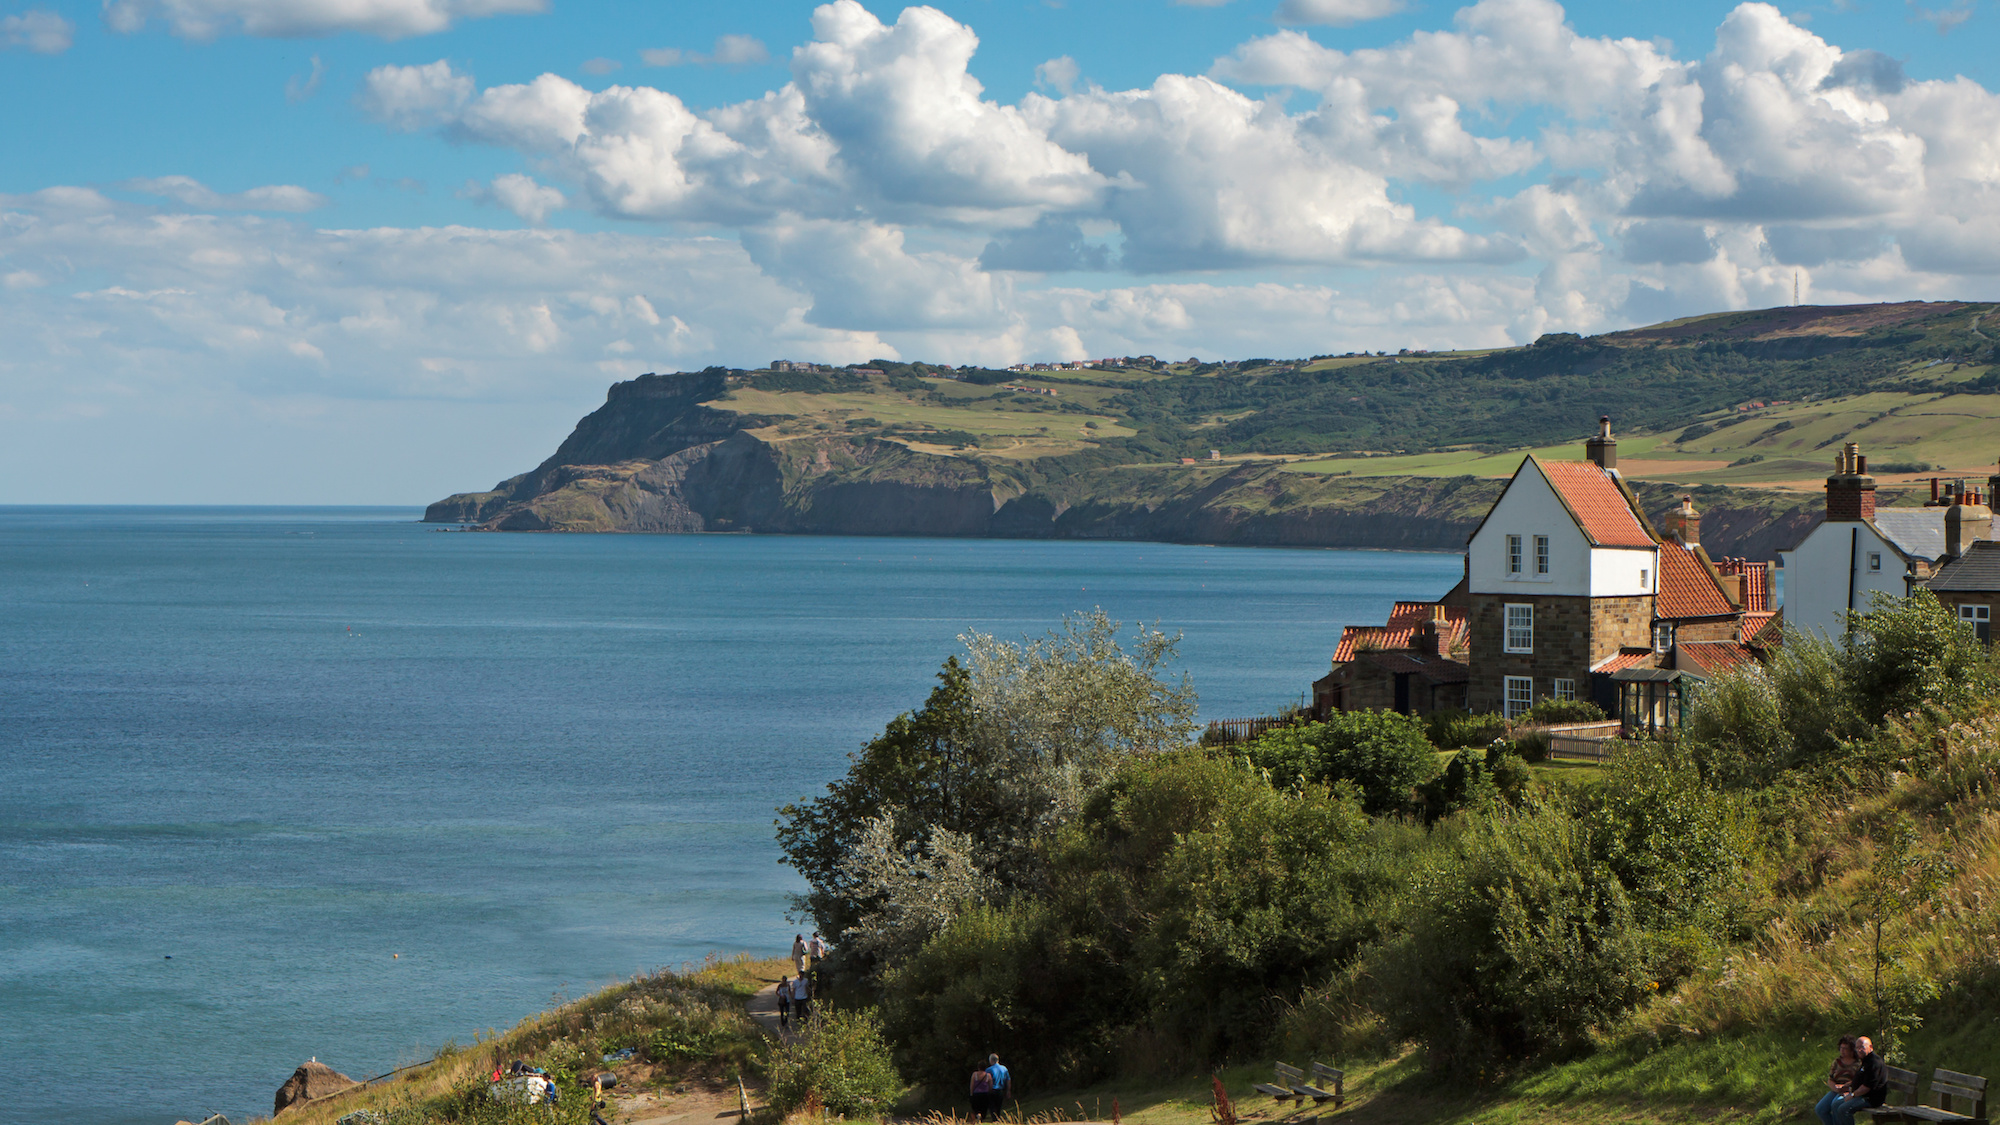 Robin Hood's Bay, Whitby, North Yorkshire